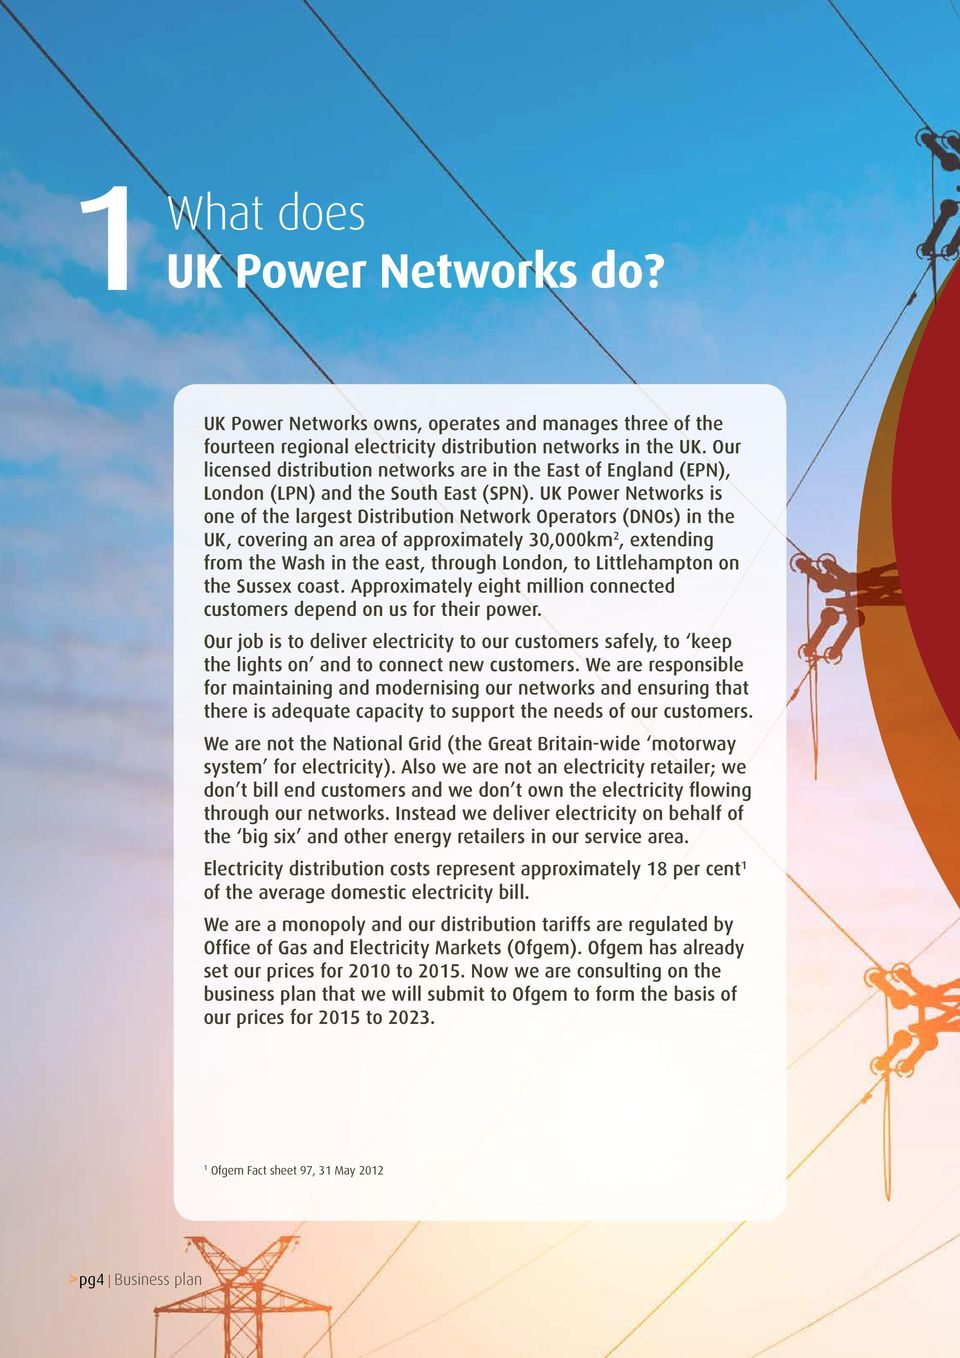 UK Power Networks is one of the largest Distribution Network Operators (DNOs) in the UK, covering an area of approximately 3,km 2, extending from the Wash in the east, through London, to